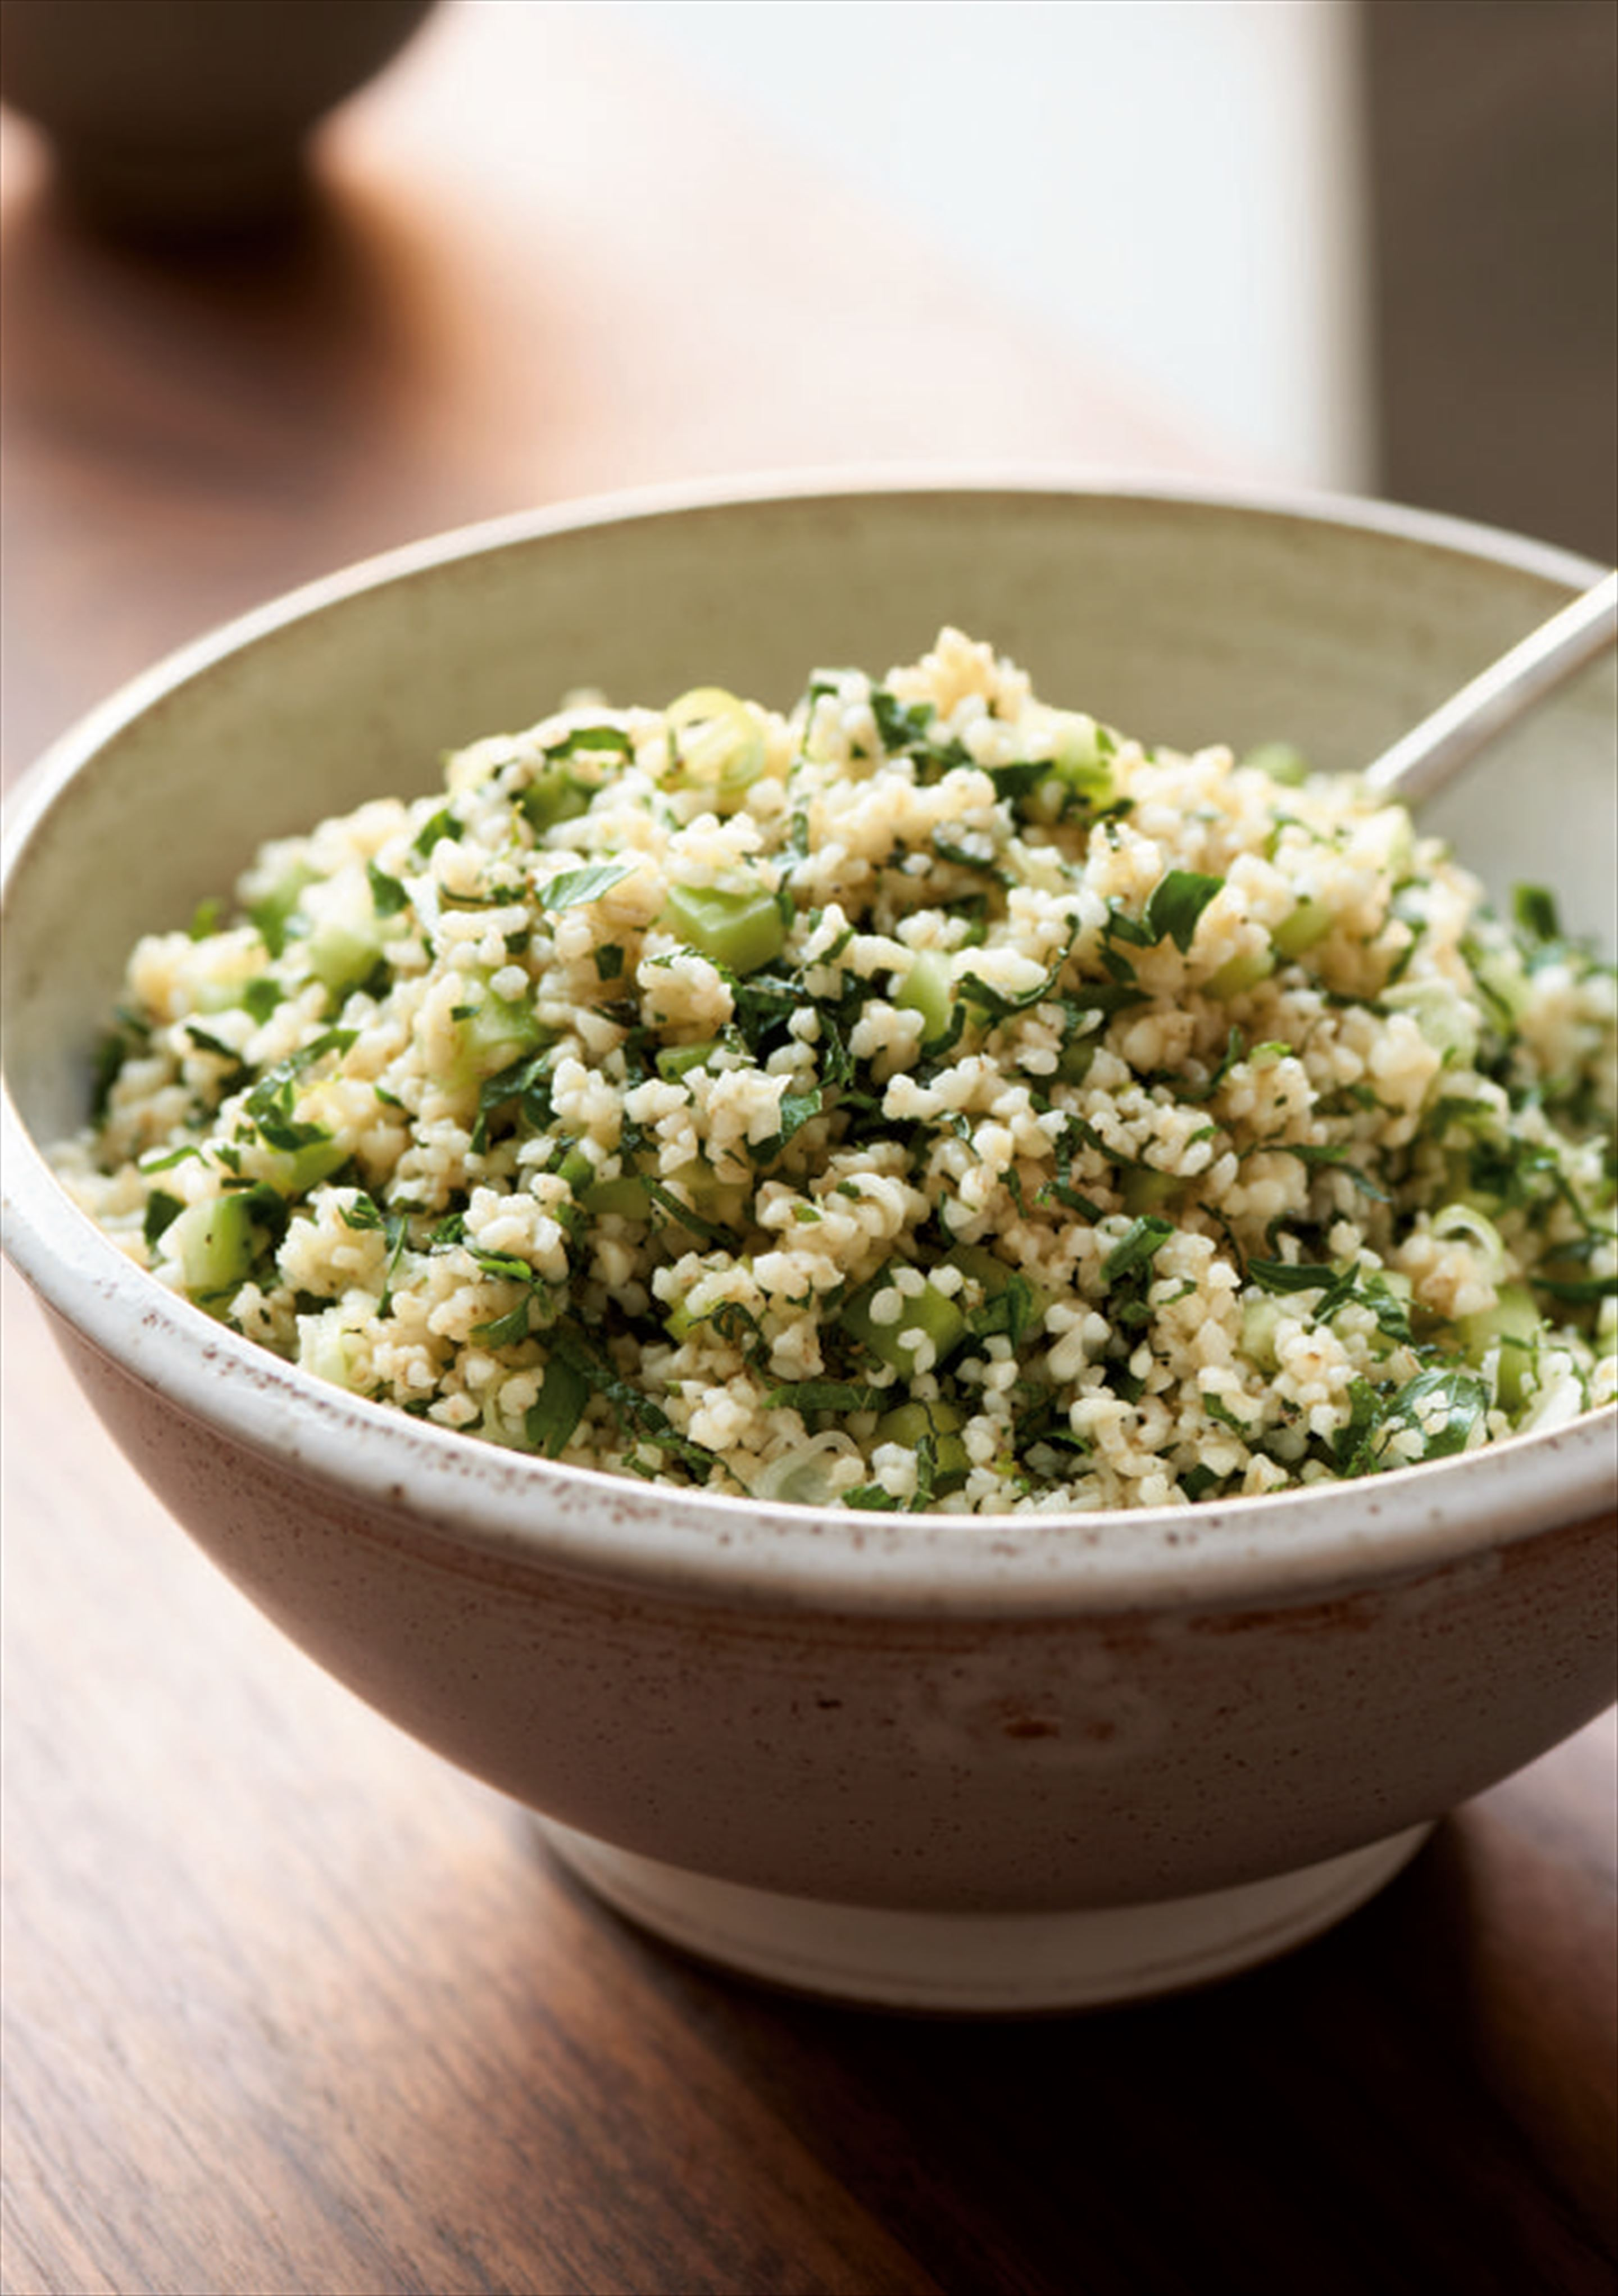 Mum's bulgar wheat salad